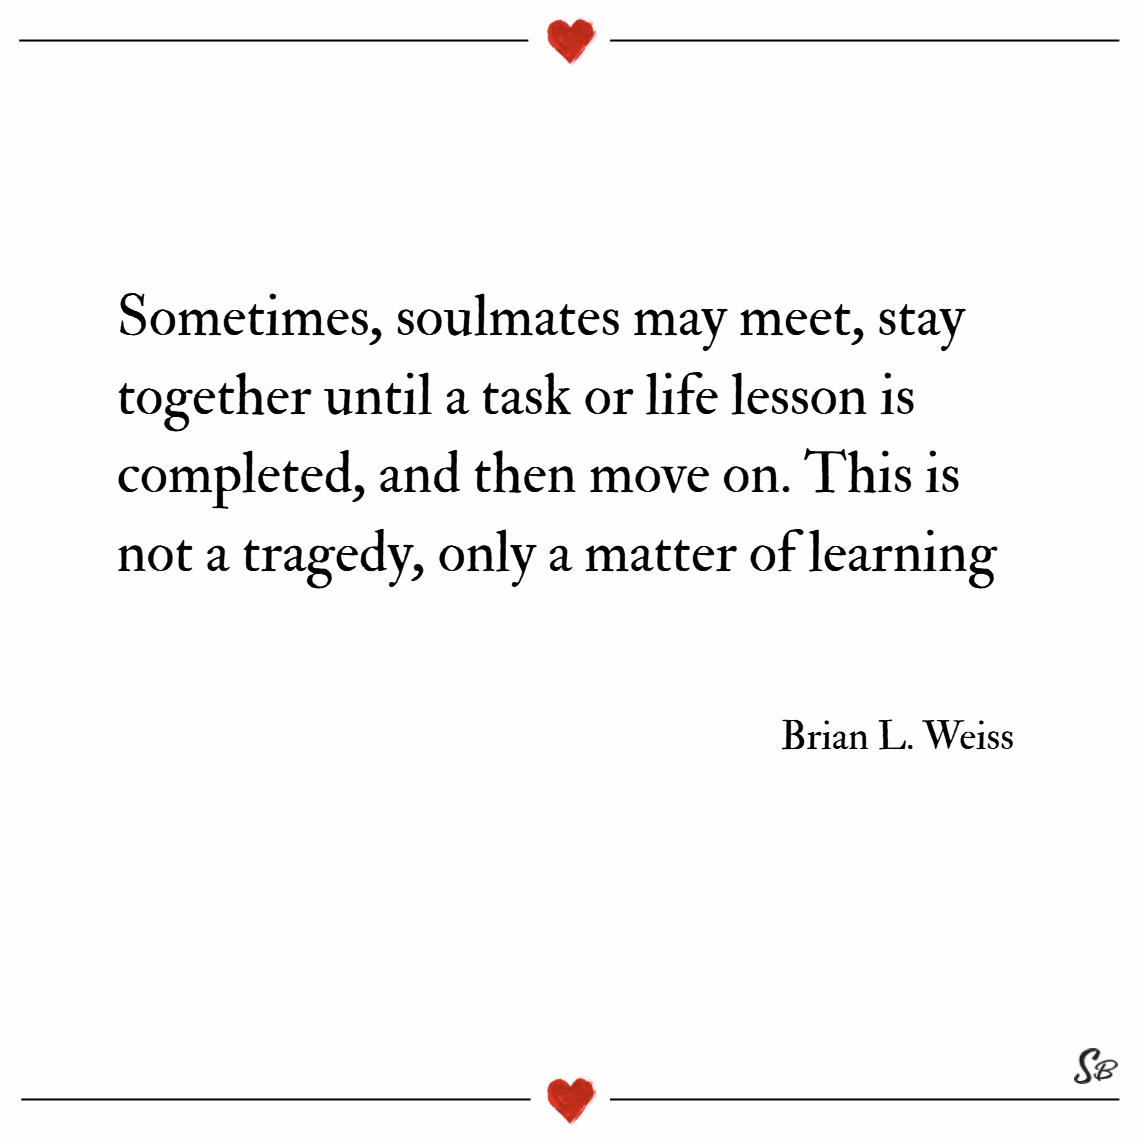 Quotes About Life Lessons And Moving On 31 Soulmate Quotes On Love Life And Connection  Spirit Button